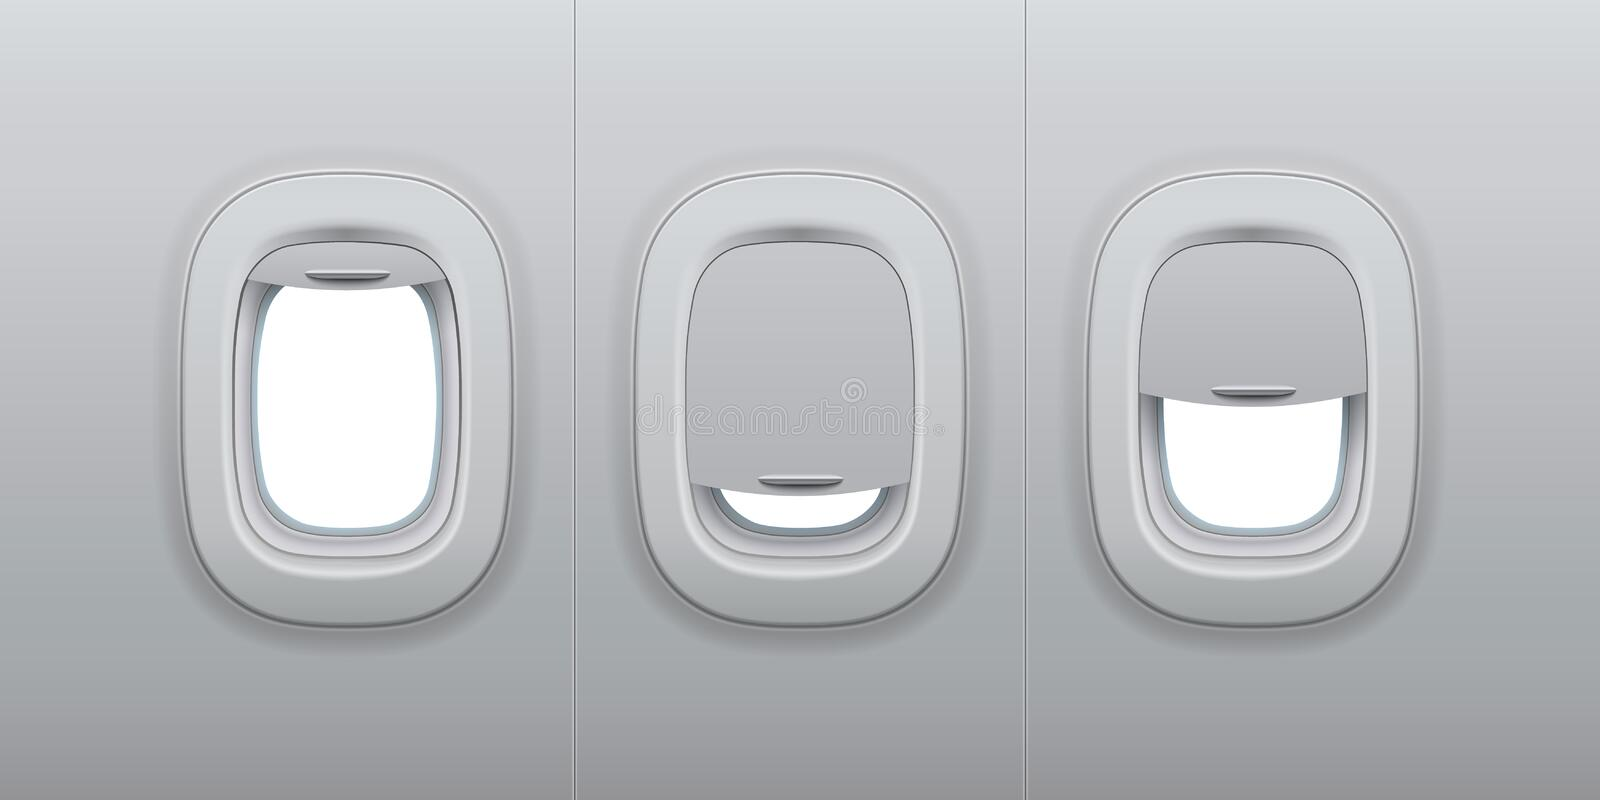 Aircraft windows. Airplane indoor portholes, plane interior window and fuselage glass porthole 3d vector illustration. Aircraft windows. Airplane indoor vector illustration